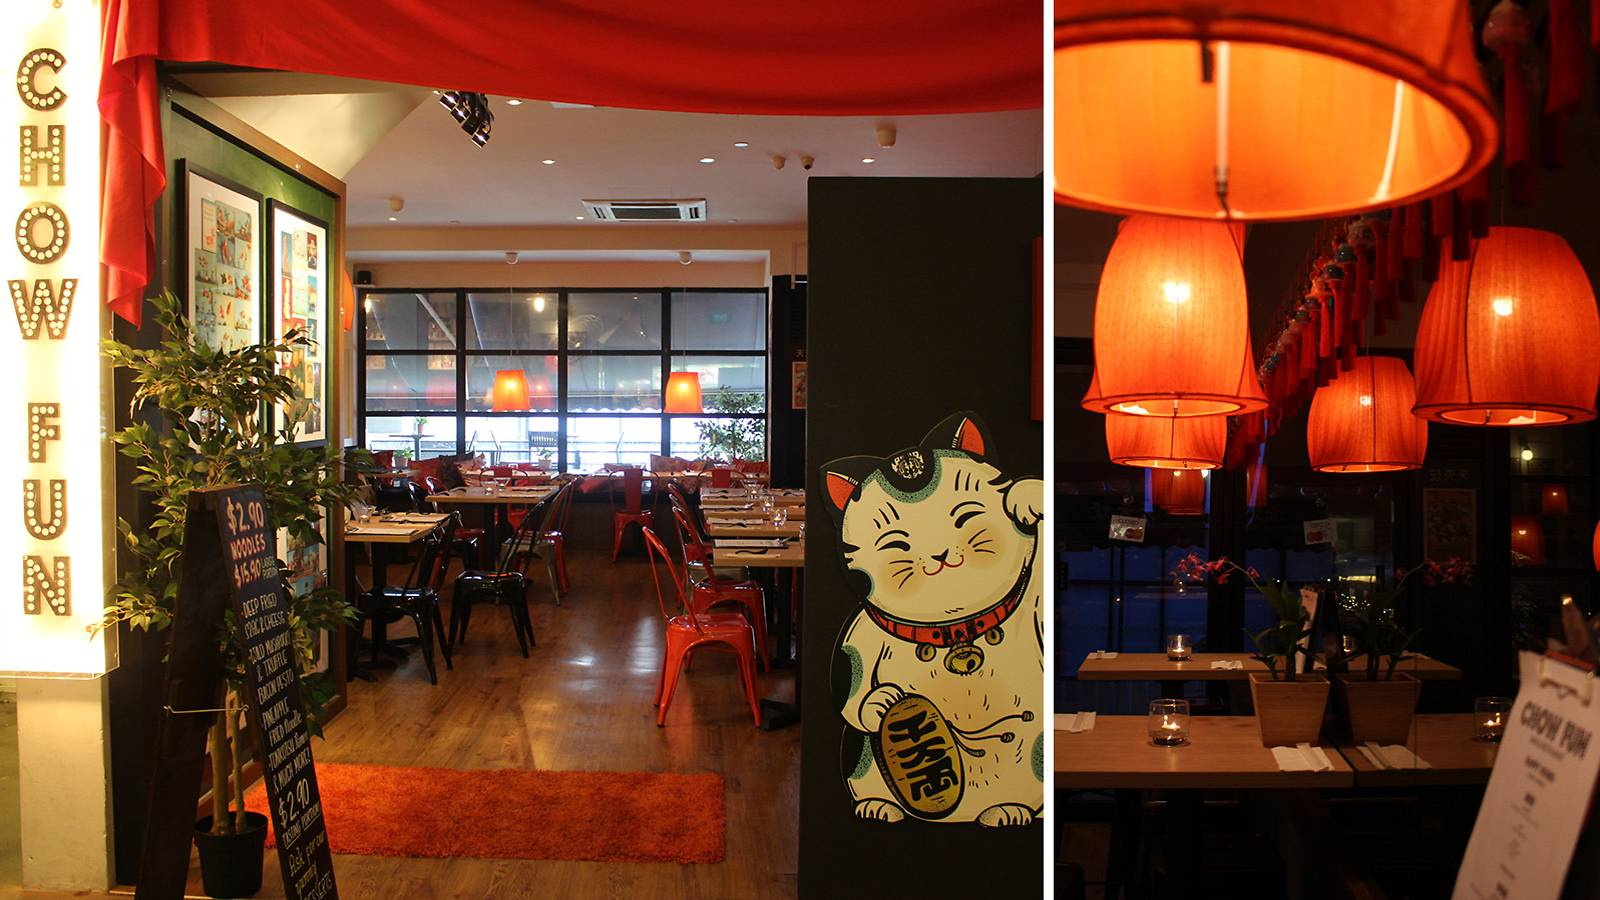 Parents-Restaurant-Review-–-Chow-Fun-Restaurant-&-Bar-INTERIOR2